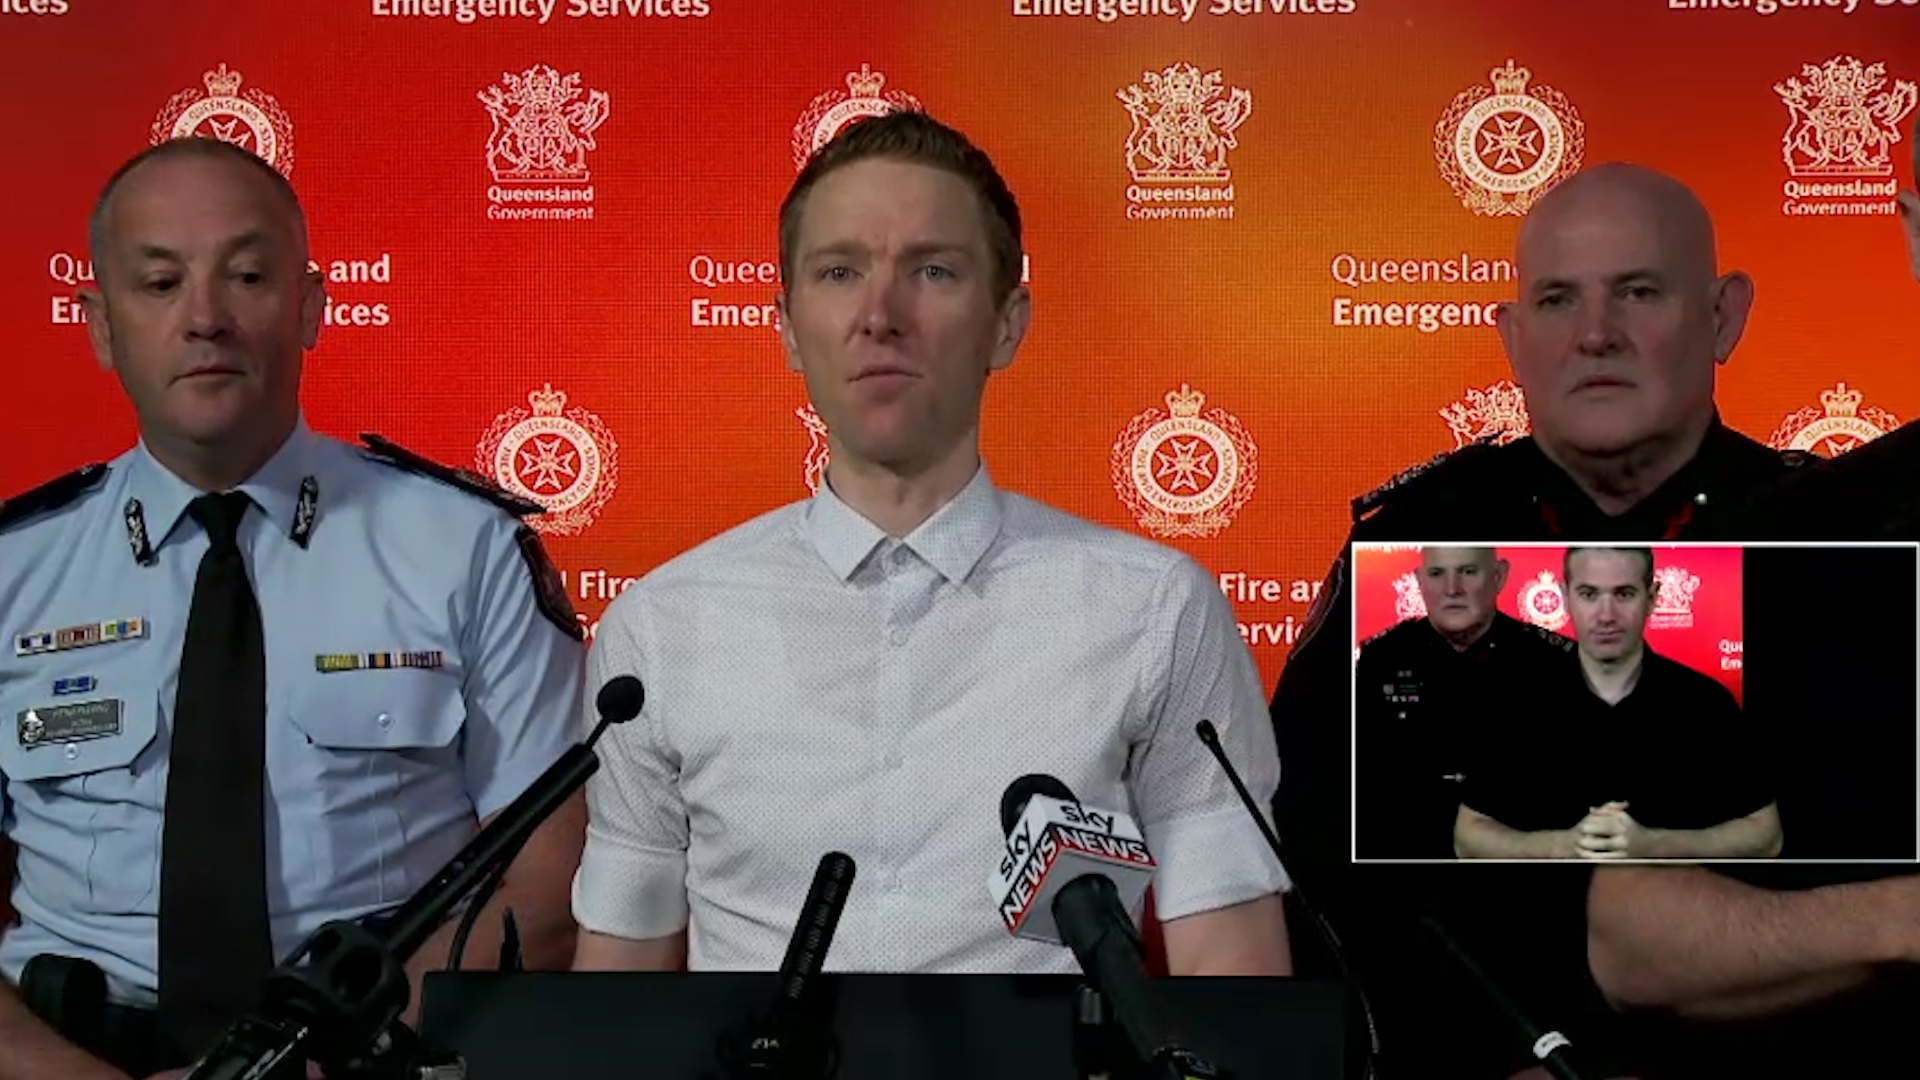 Emergency Services update weekend storm conditions and ask public to be prepared for wild weather.